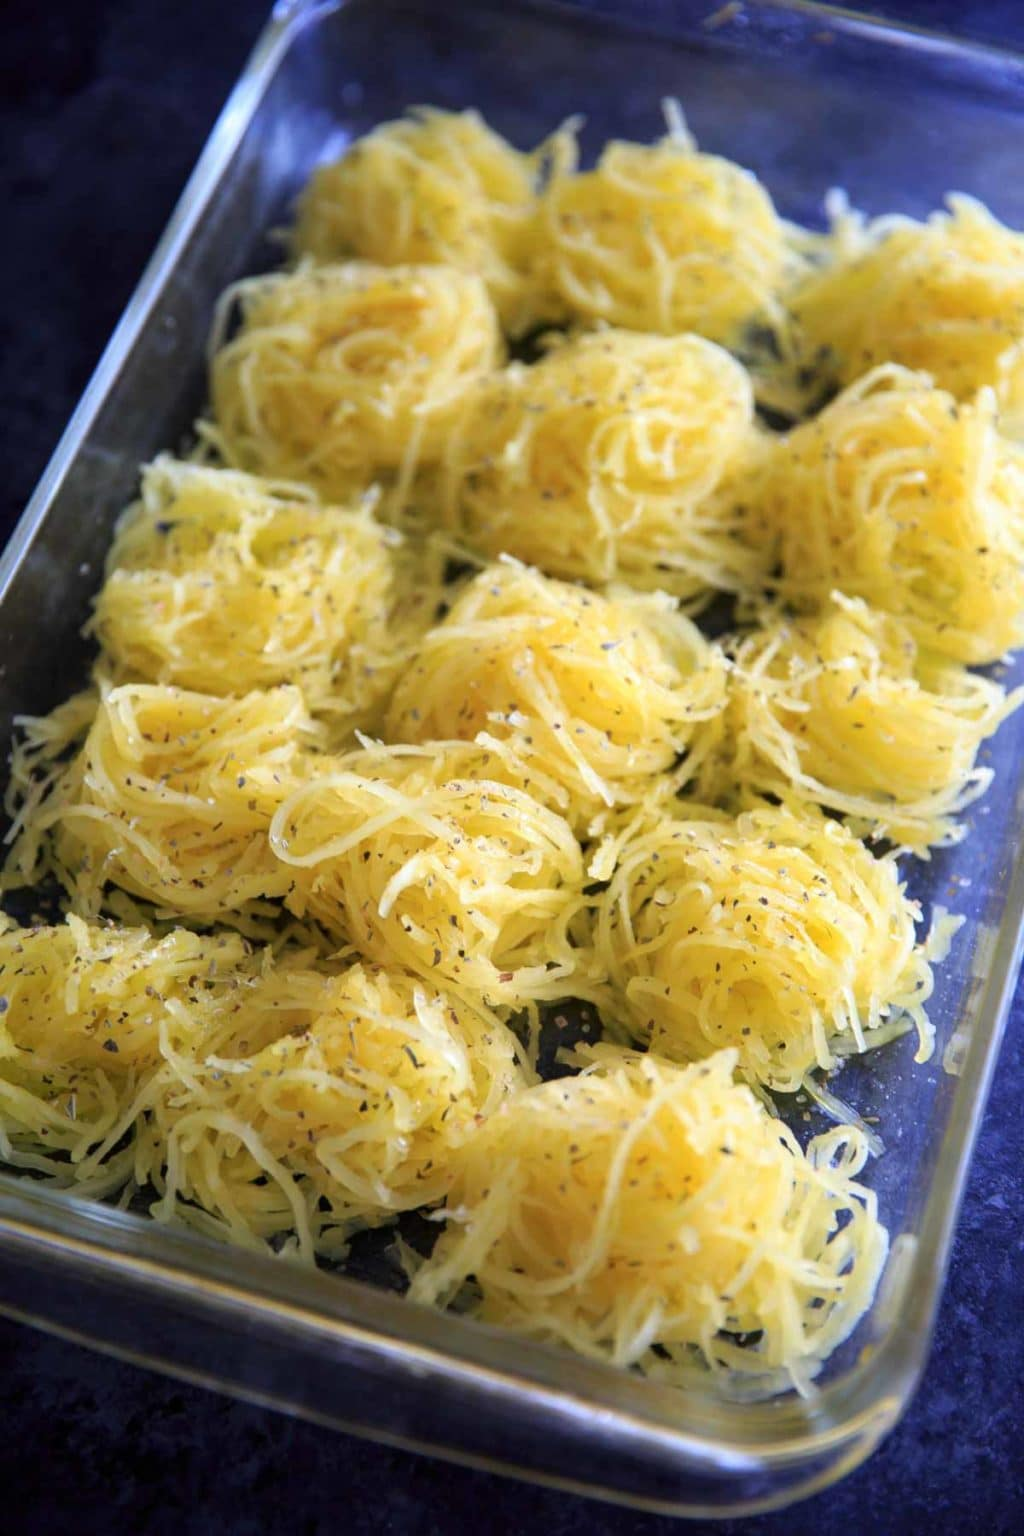 Spaghetti squash seasoned with olive oil, salt and pepper